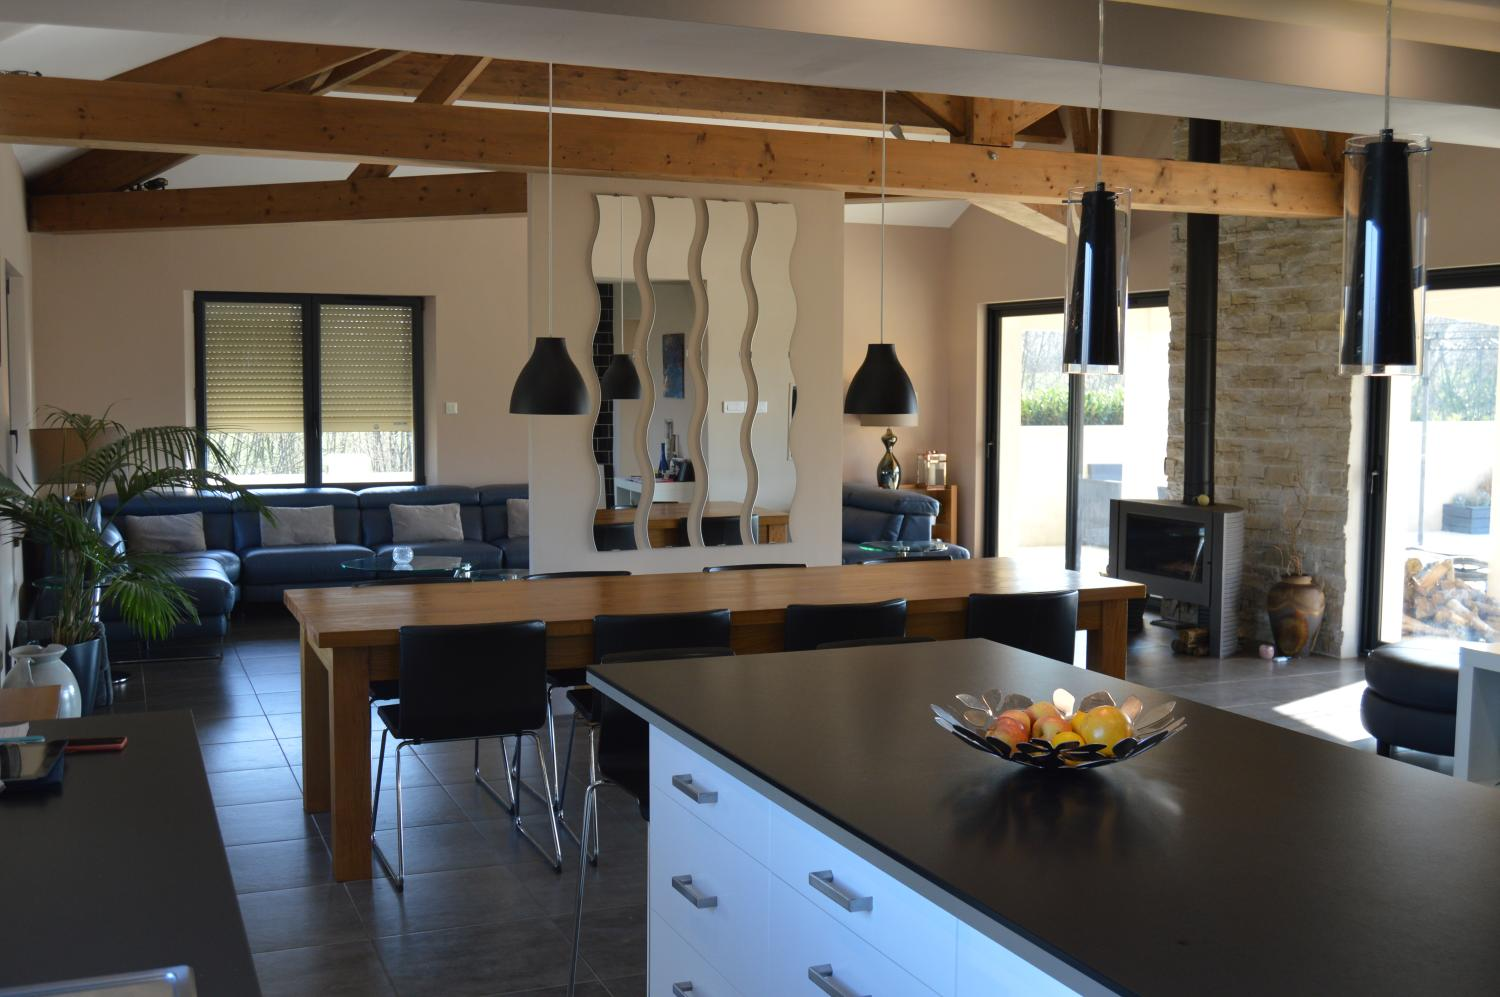 kitchen dining living, Villa Chevalet, Fontenay-le-Comte, Vendee Charente